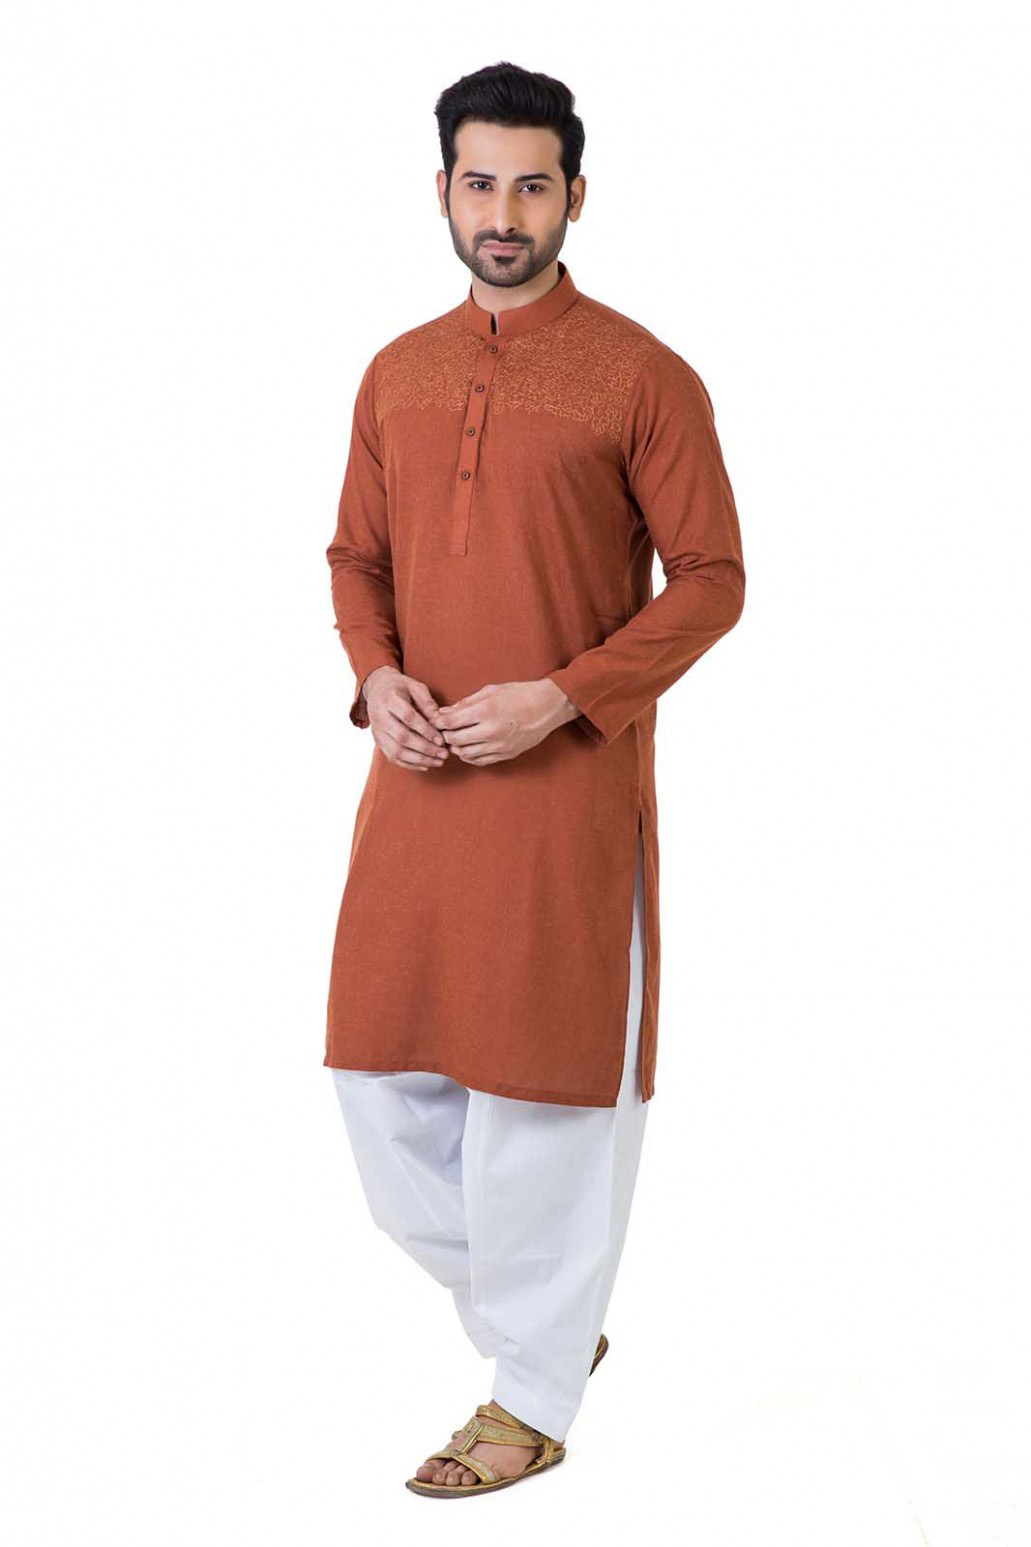 Brown kurta with white shalwar